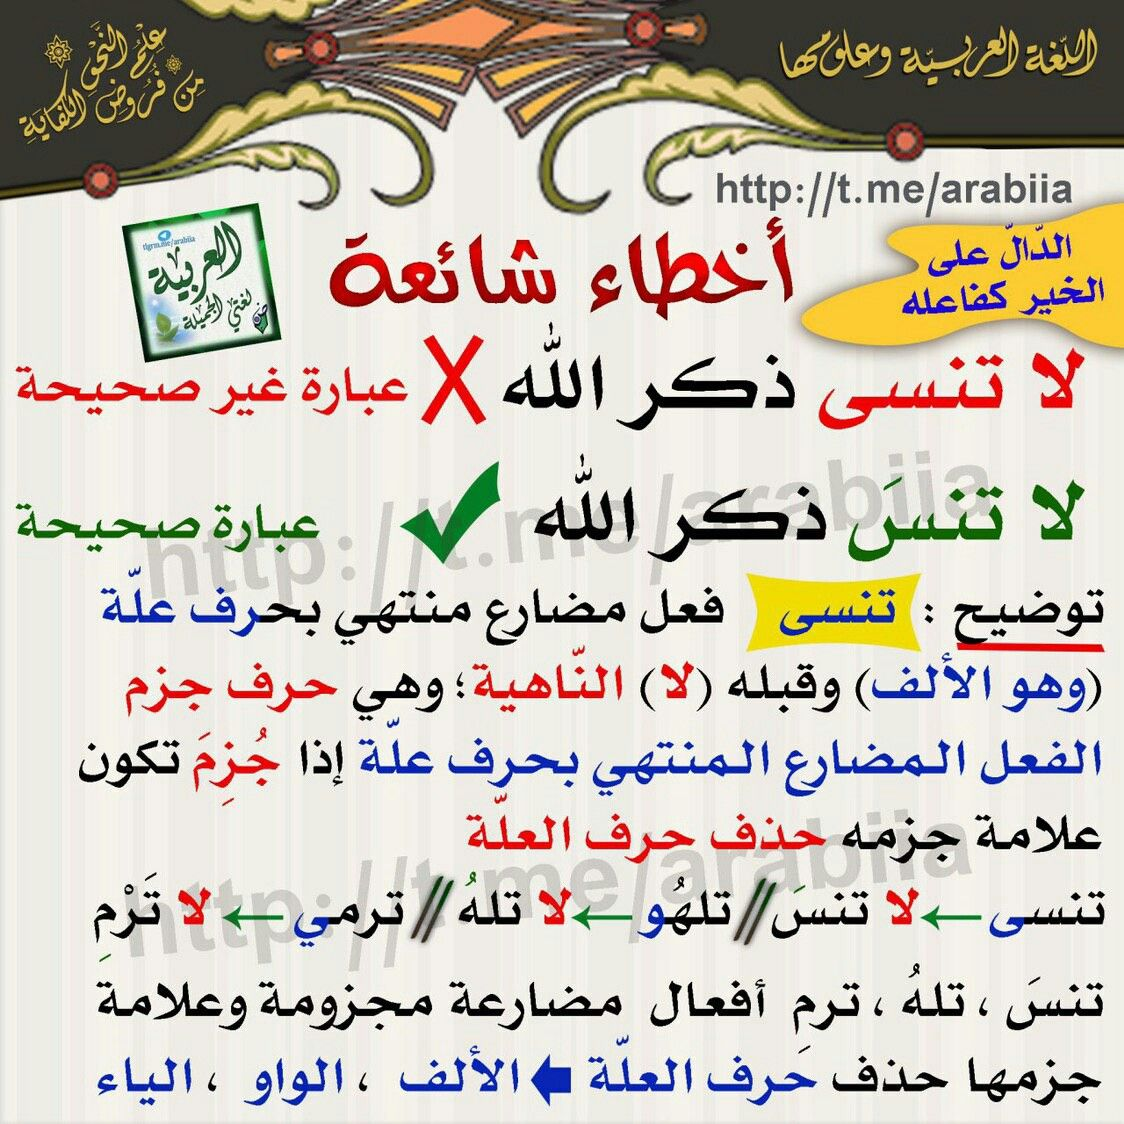 Pin By Amy On شعر عربي Arabic Poetry Arabic Poetry Poetry Arabic Calligraphy